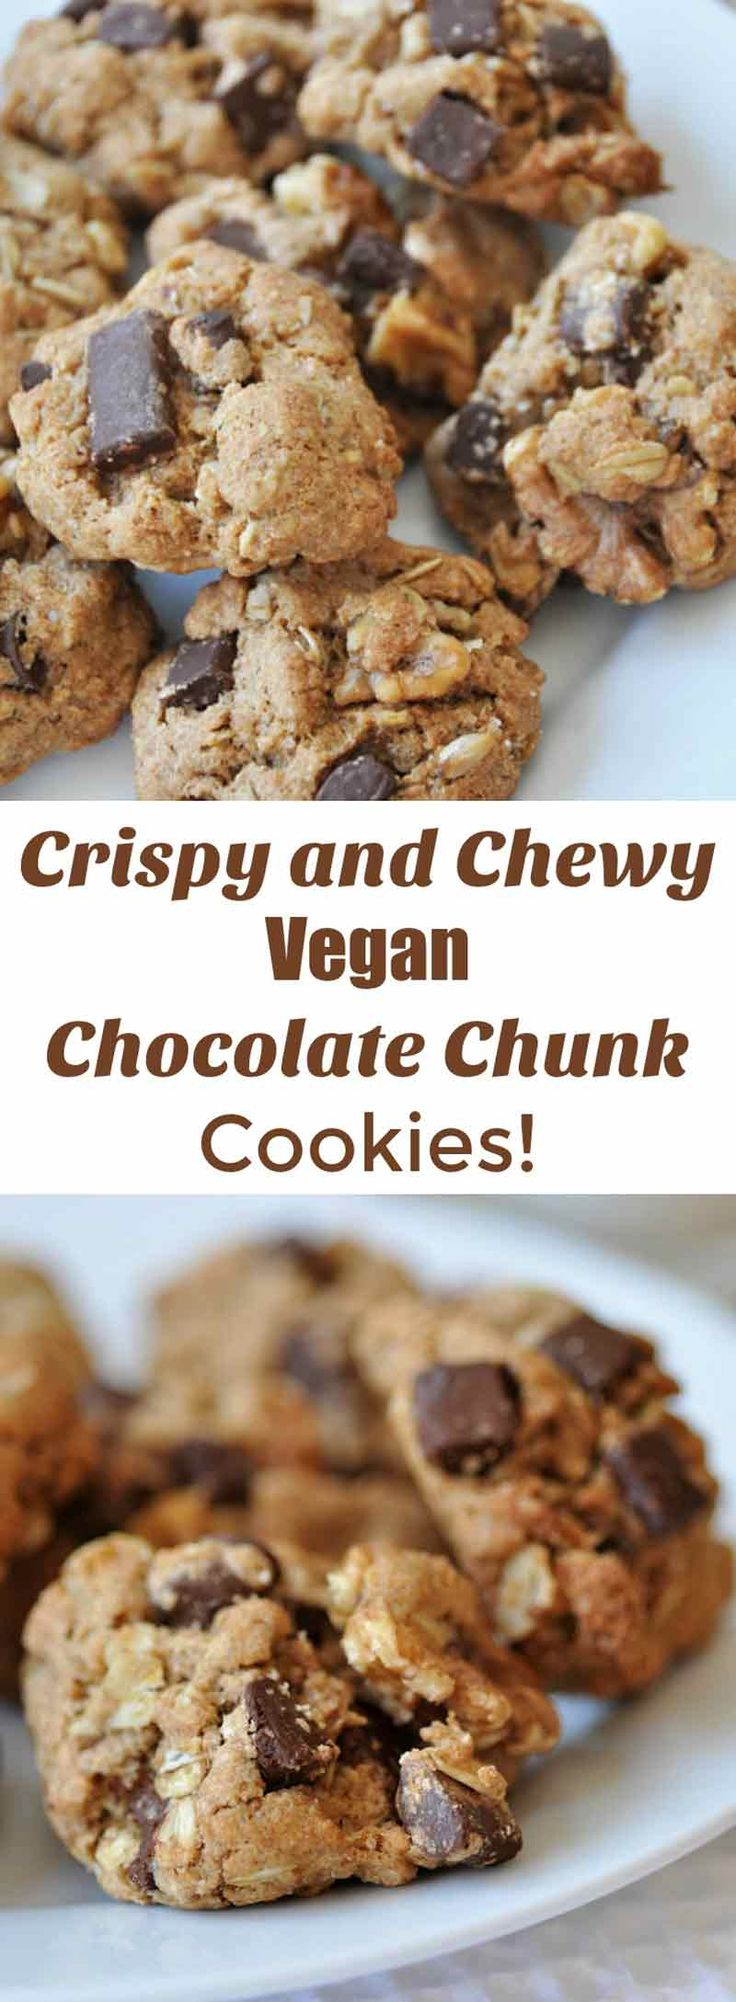 17 Best images about Vegan Food + Recipes to Veganize! on ...